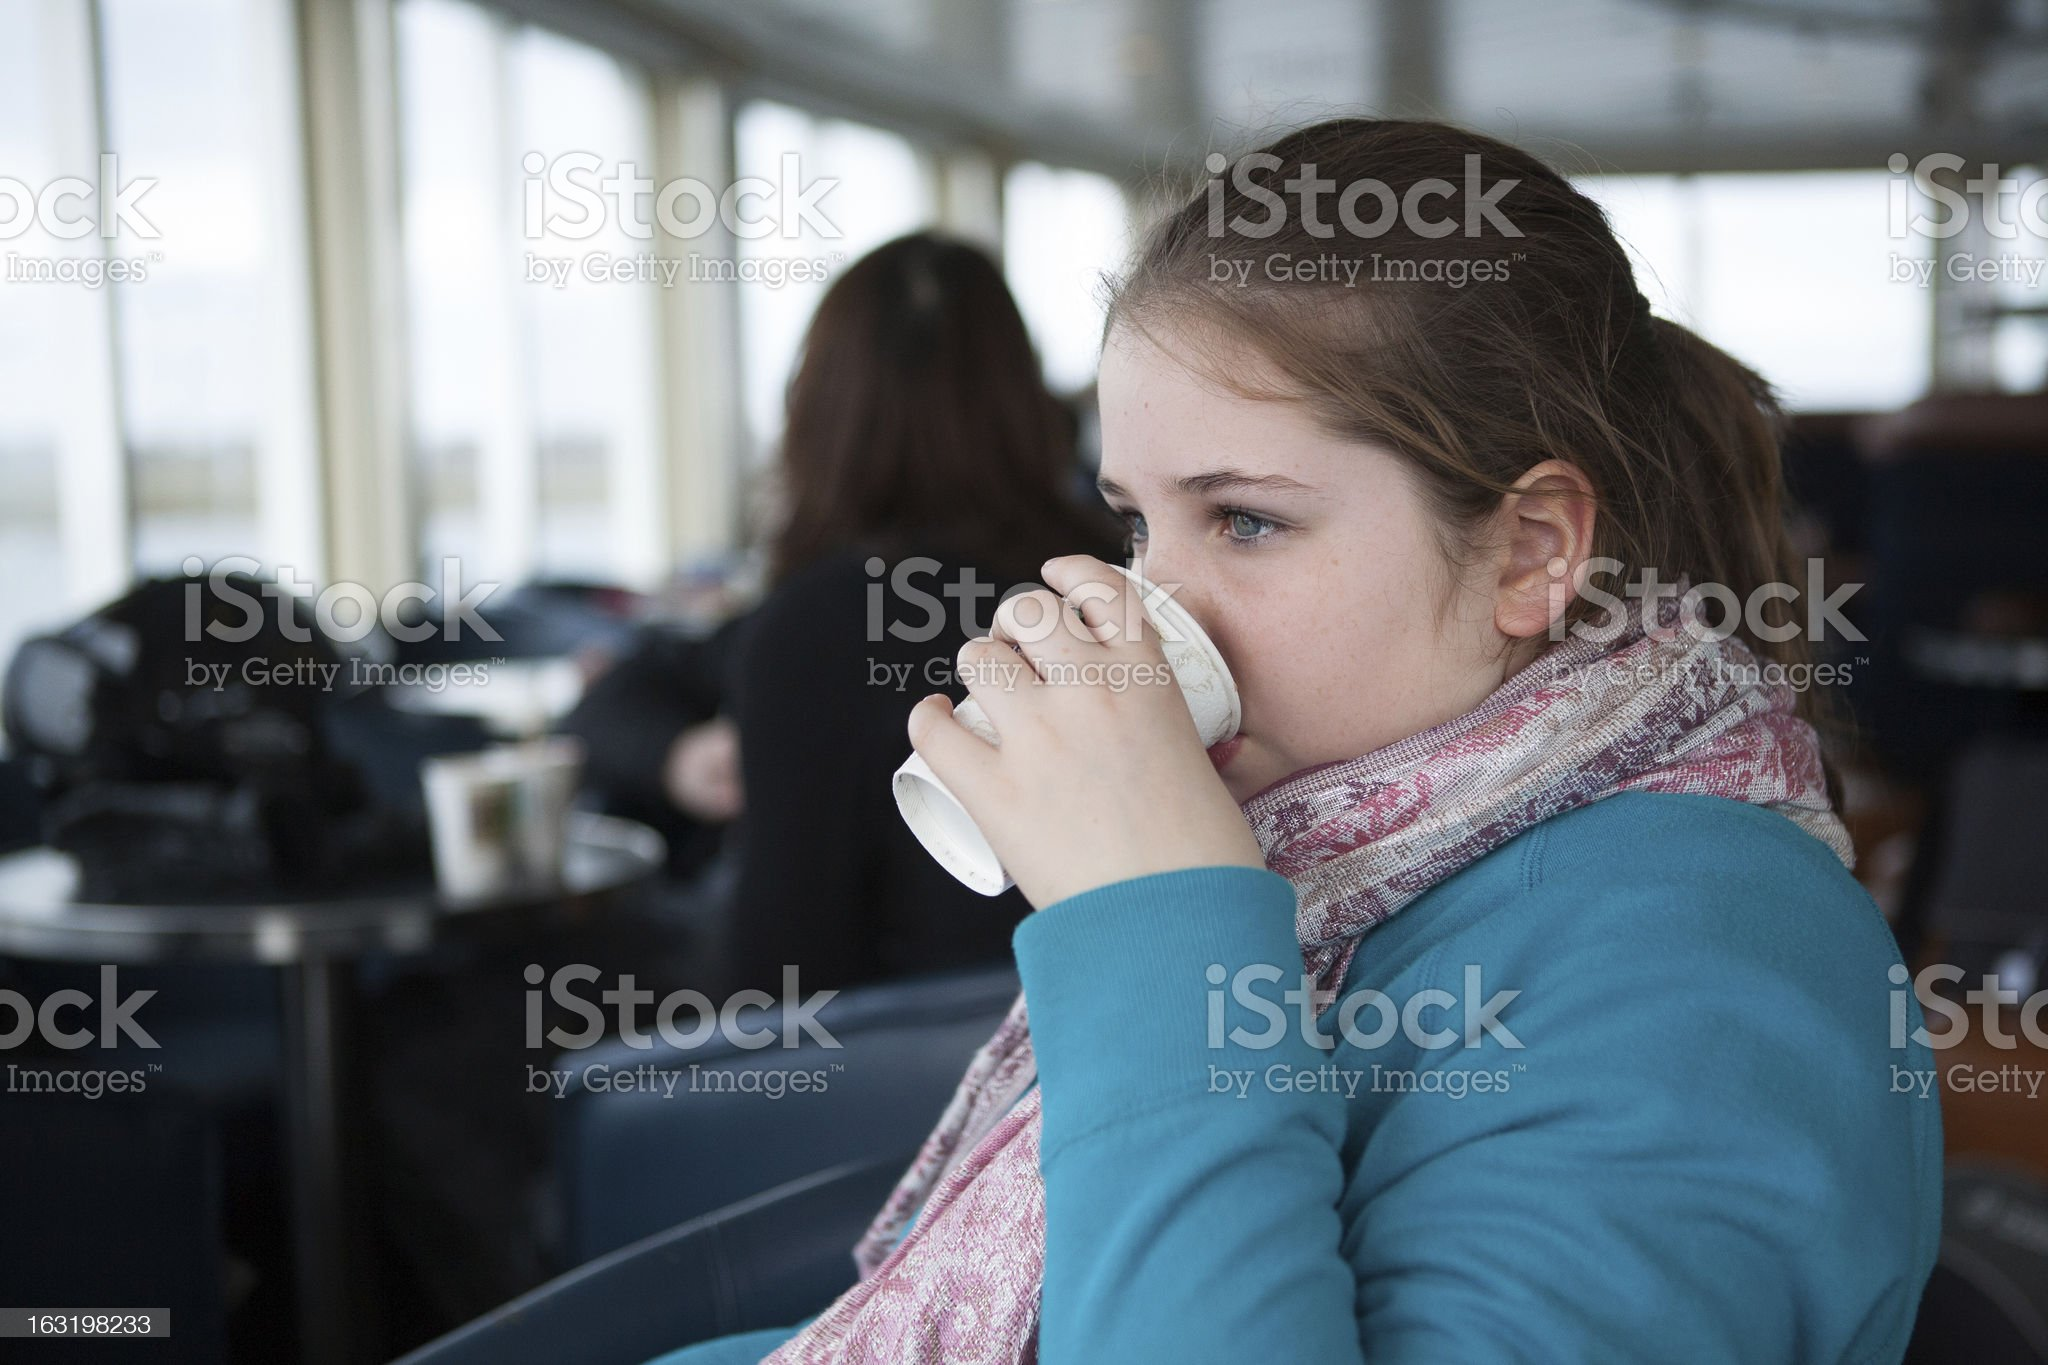 Young Teenage Girl Drinking From Paper Cup On a Ferry royalty-free stock photo